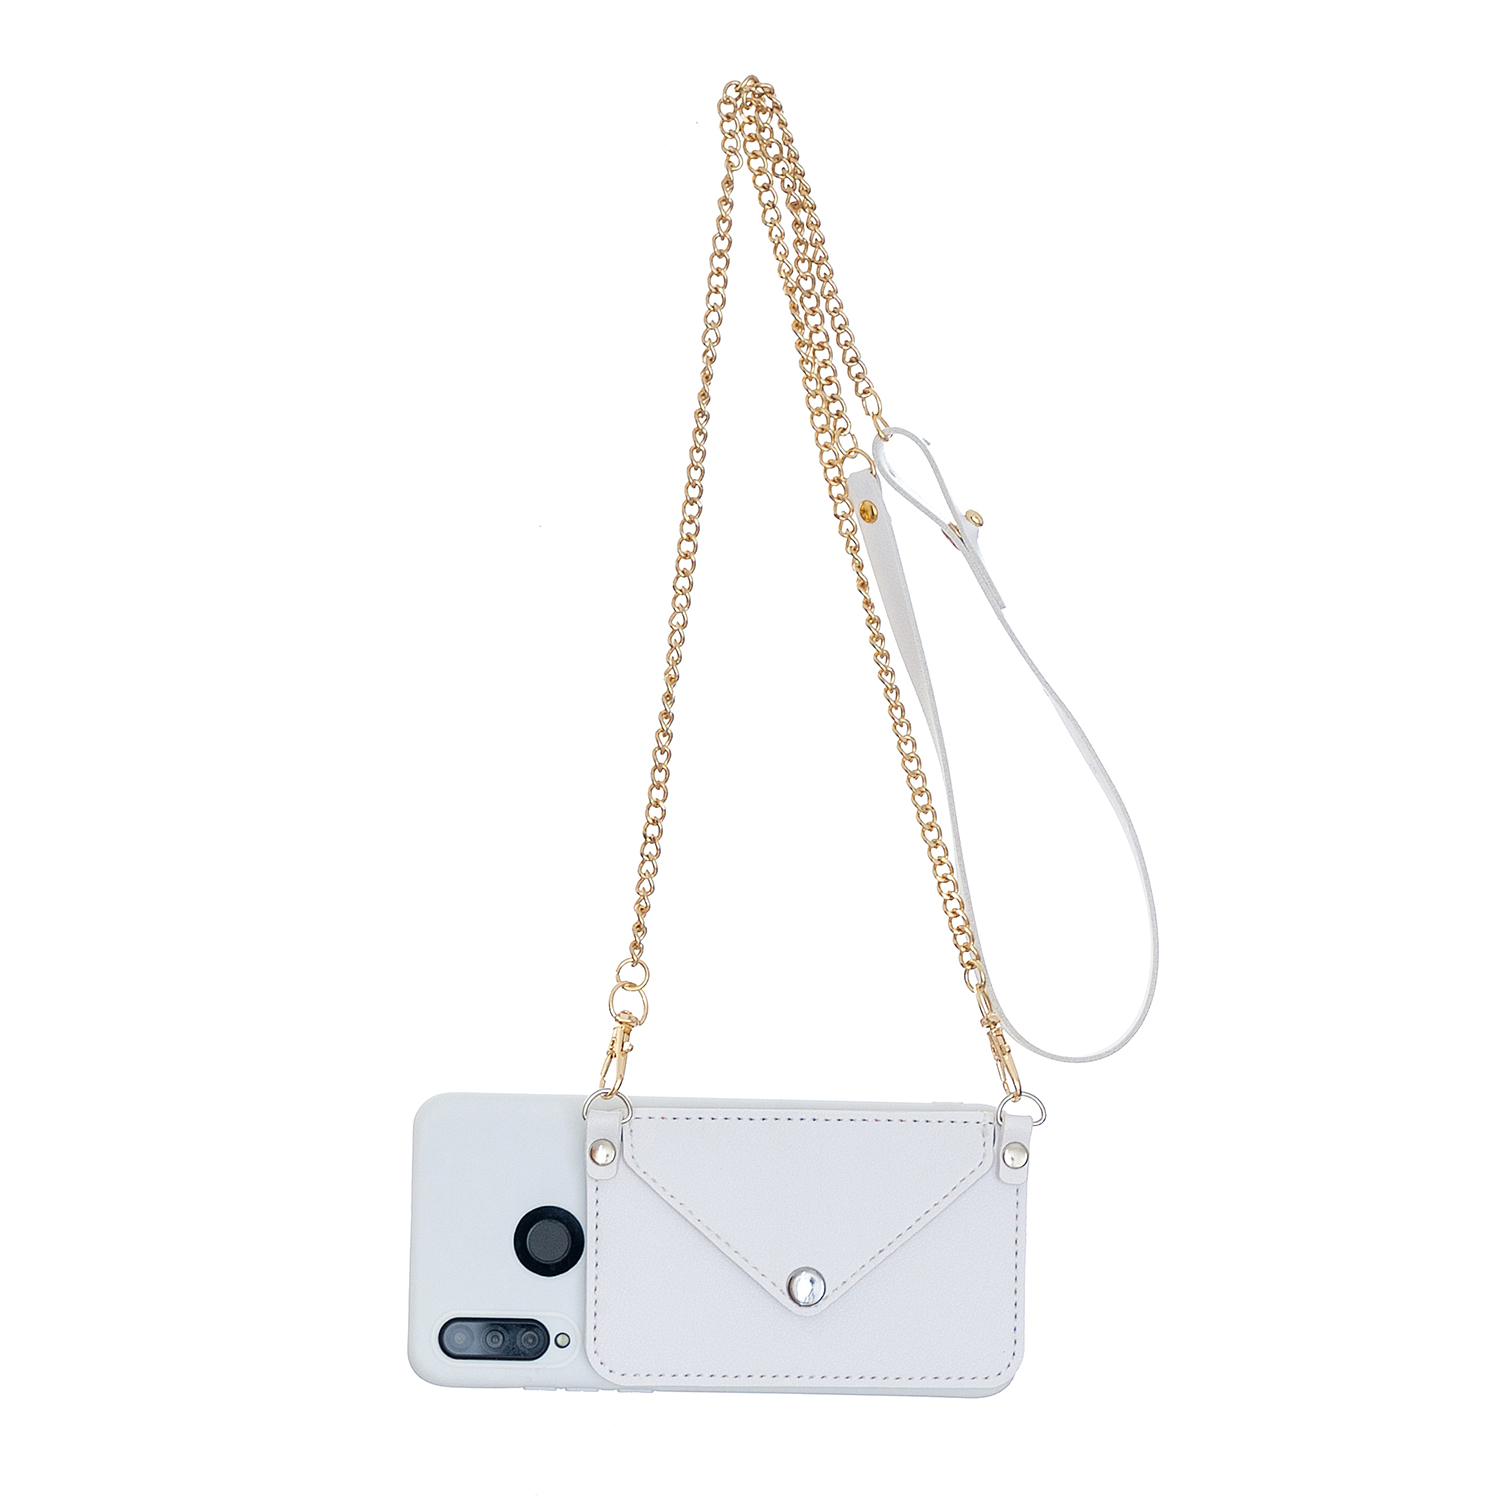 For HUAWEI P30/P30 Lite/P30 Pro Mobile Phone Cover with Pu Leather Card Holder + Hand Rope + Straddle Rope white